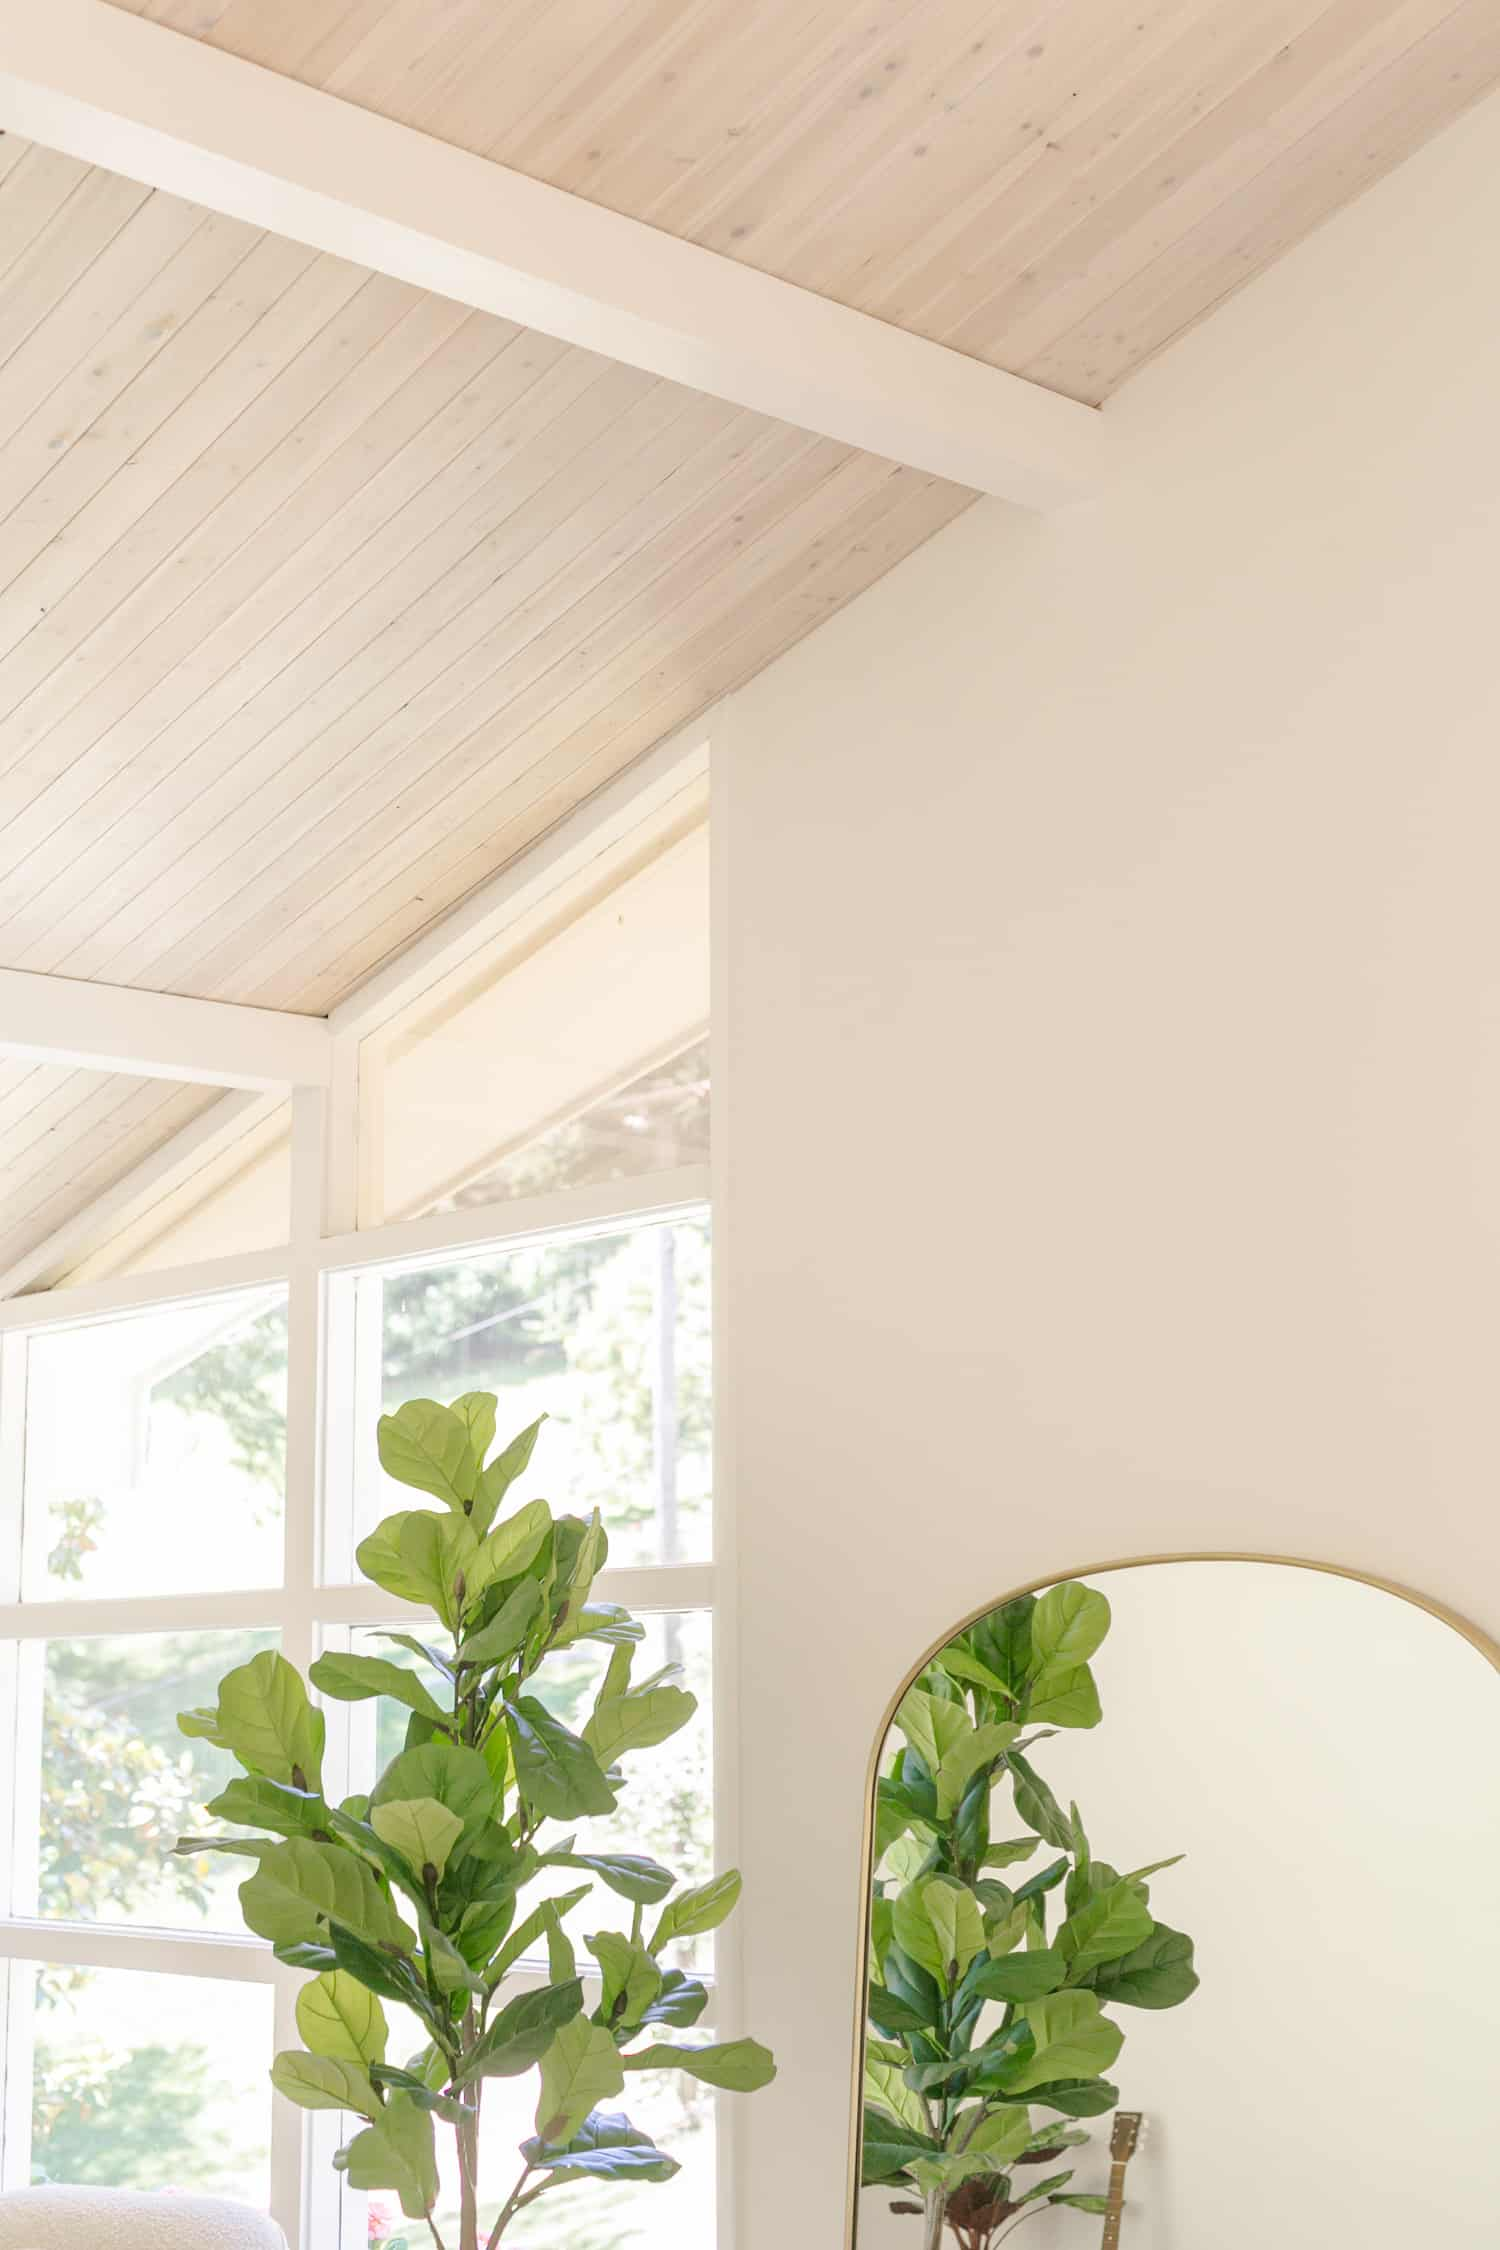 DIY Paneled Ceiling (How to Cover Popcorn Ceilings)